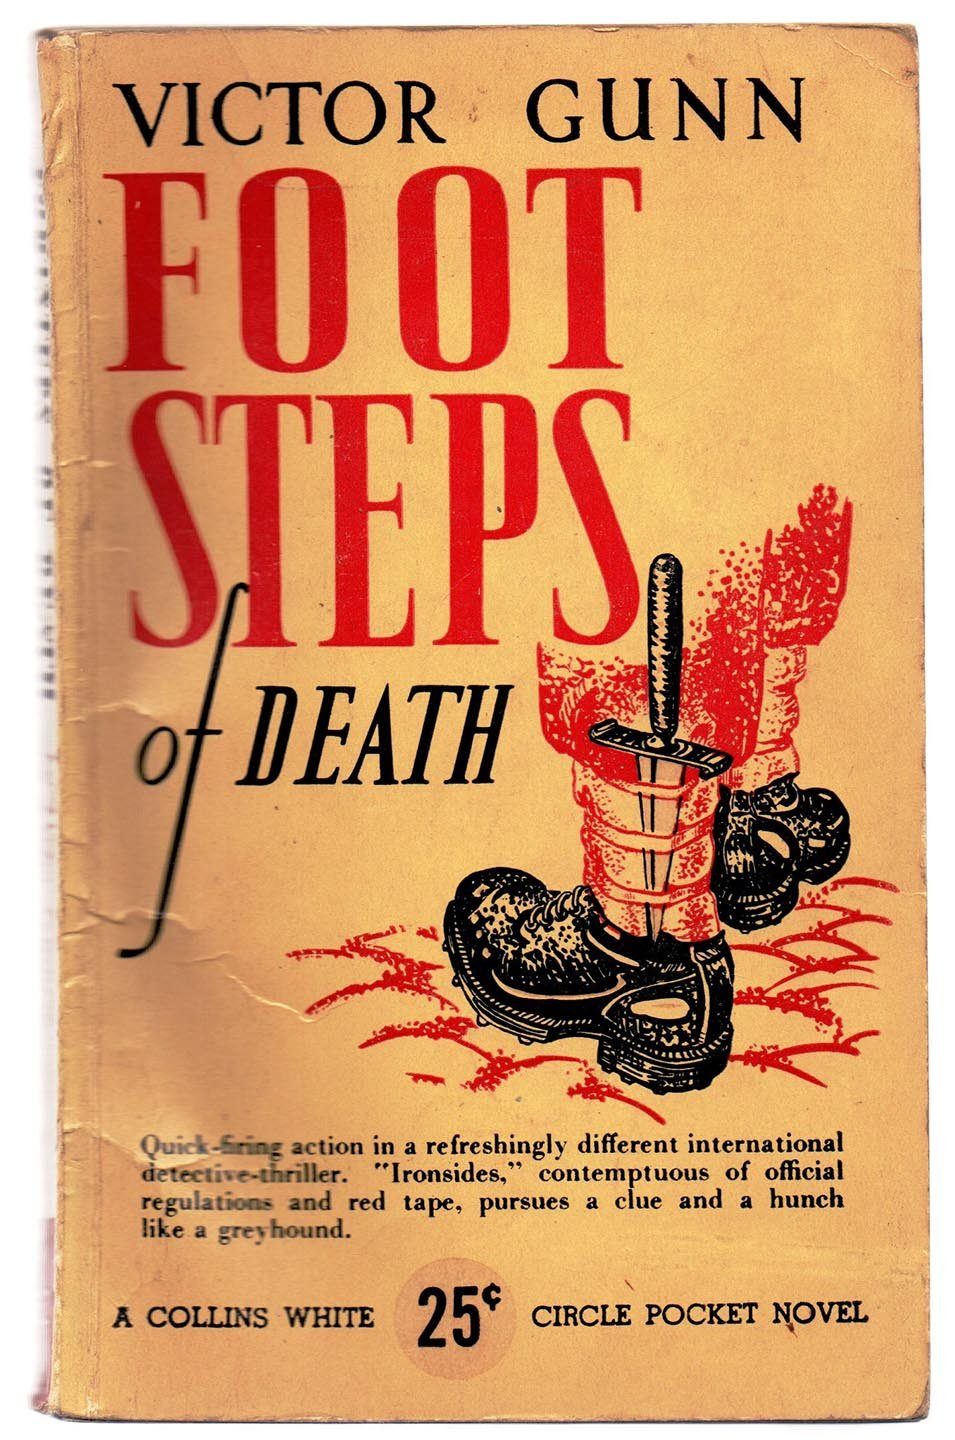 Foot Steps of Death